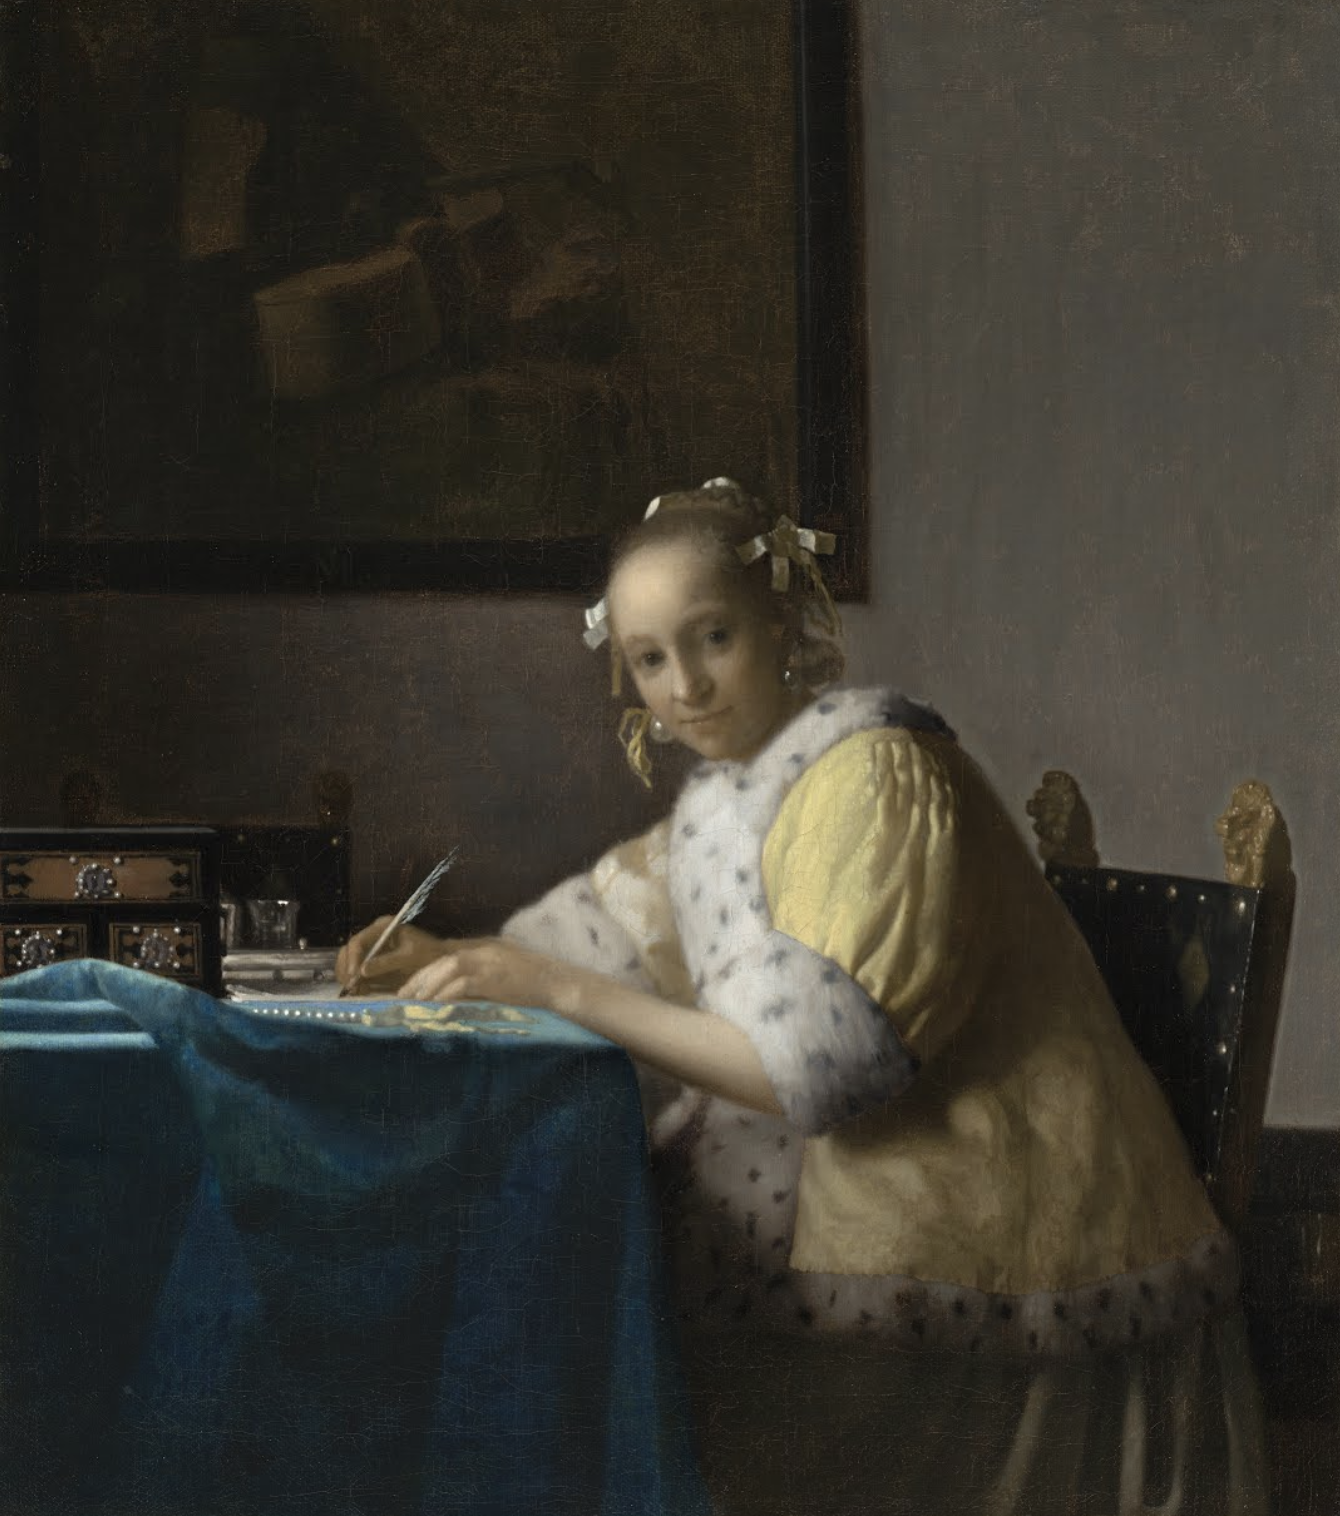 A Lady Writing - Johannes Vermeer - c. 1665